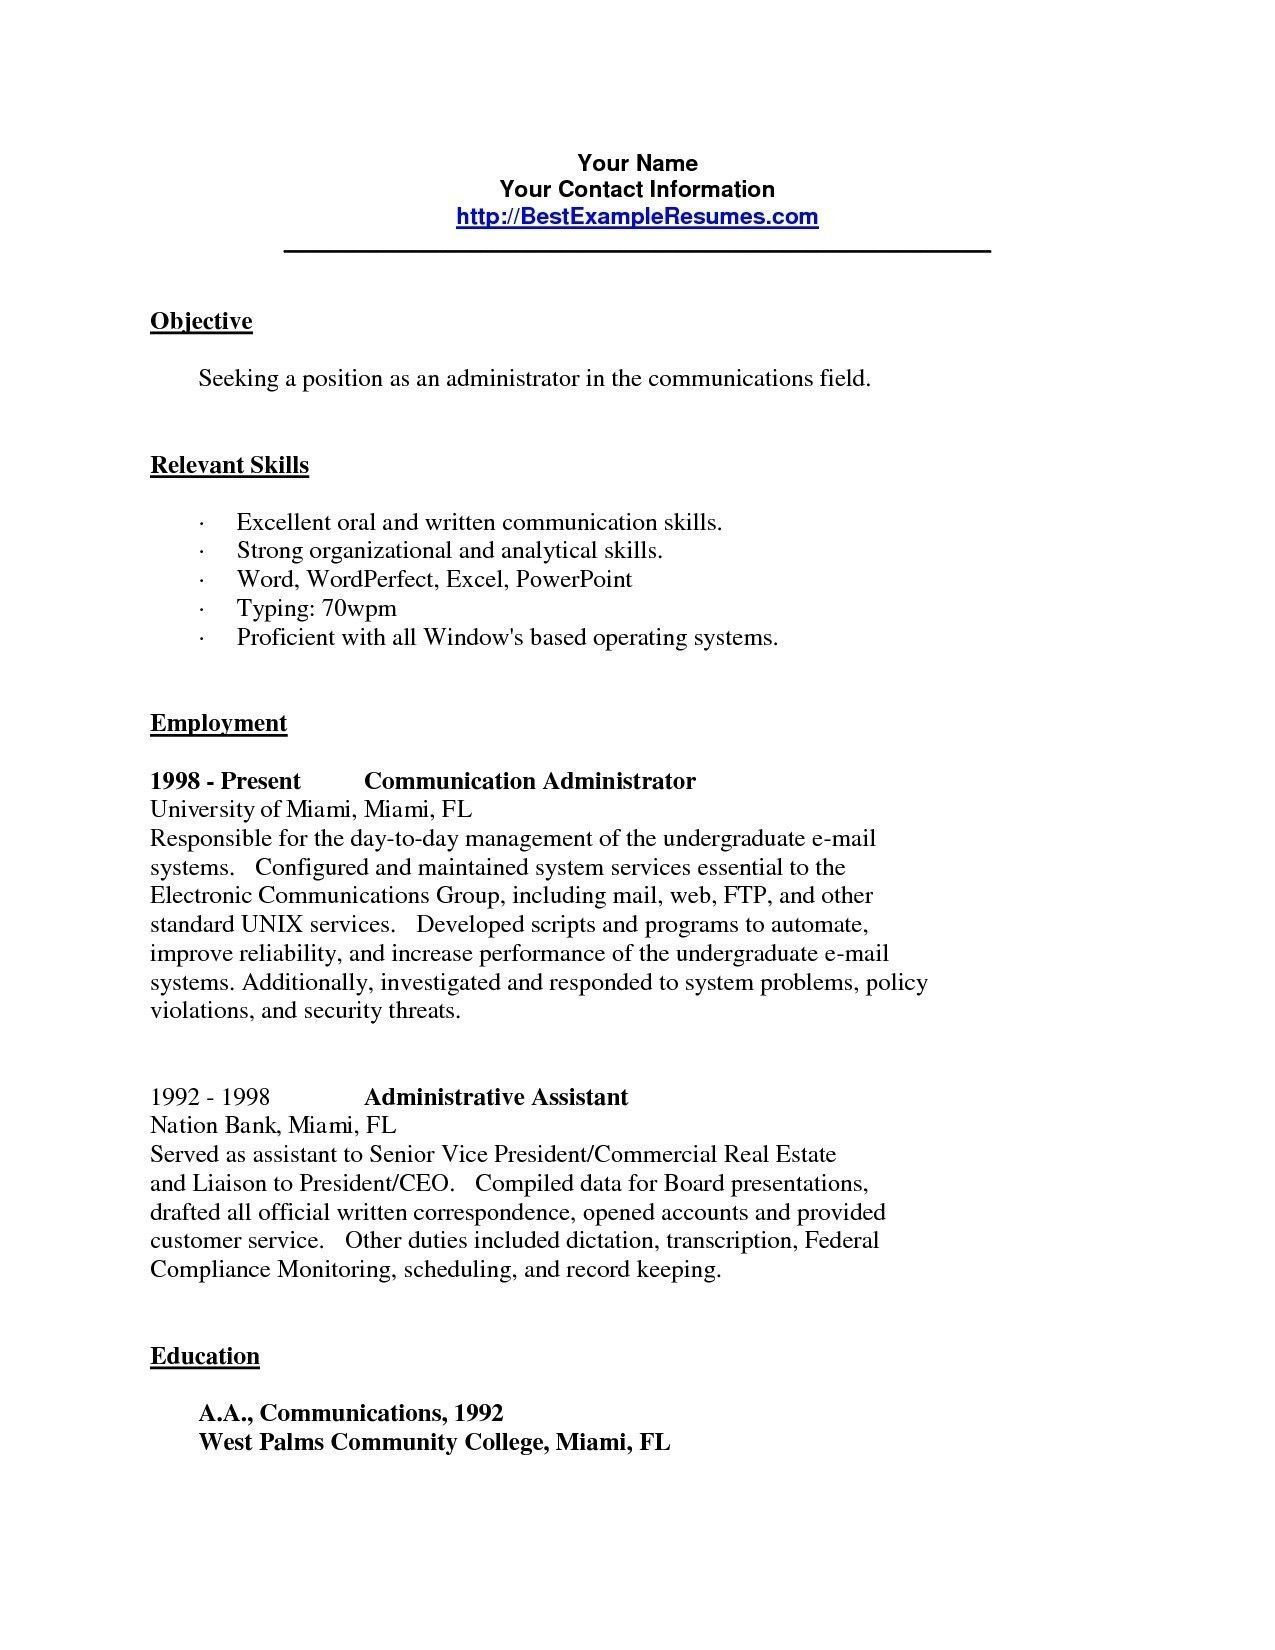 Communication Example For Resume In 2021 Resume Skills Job Resume Examples Communication Skills